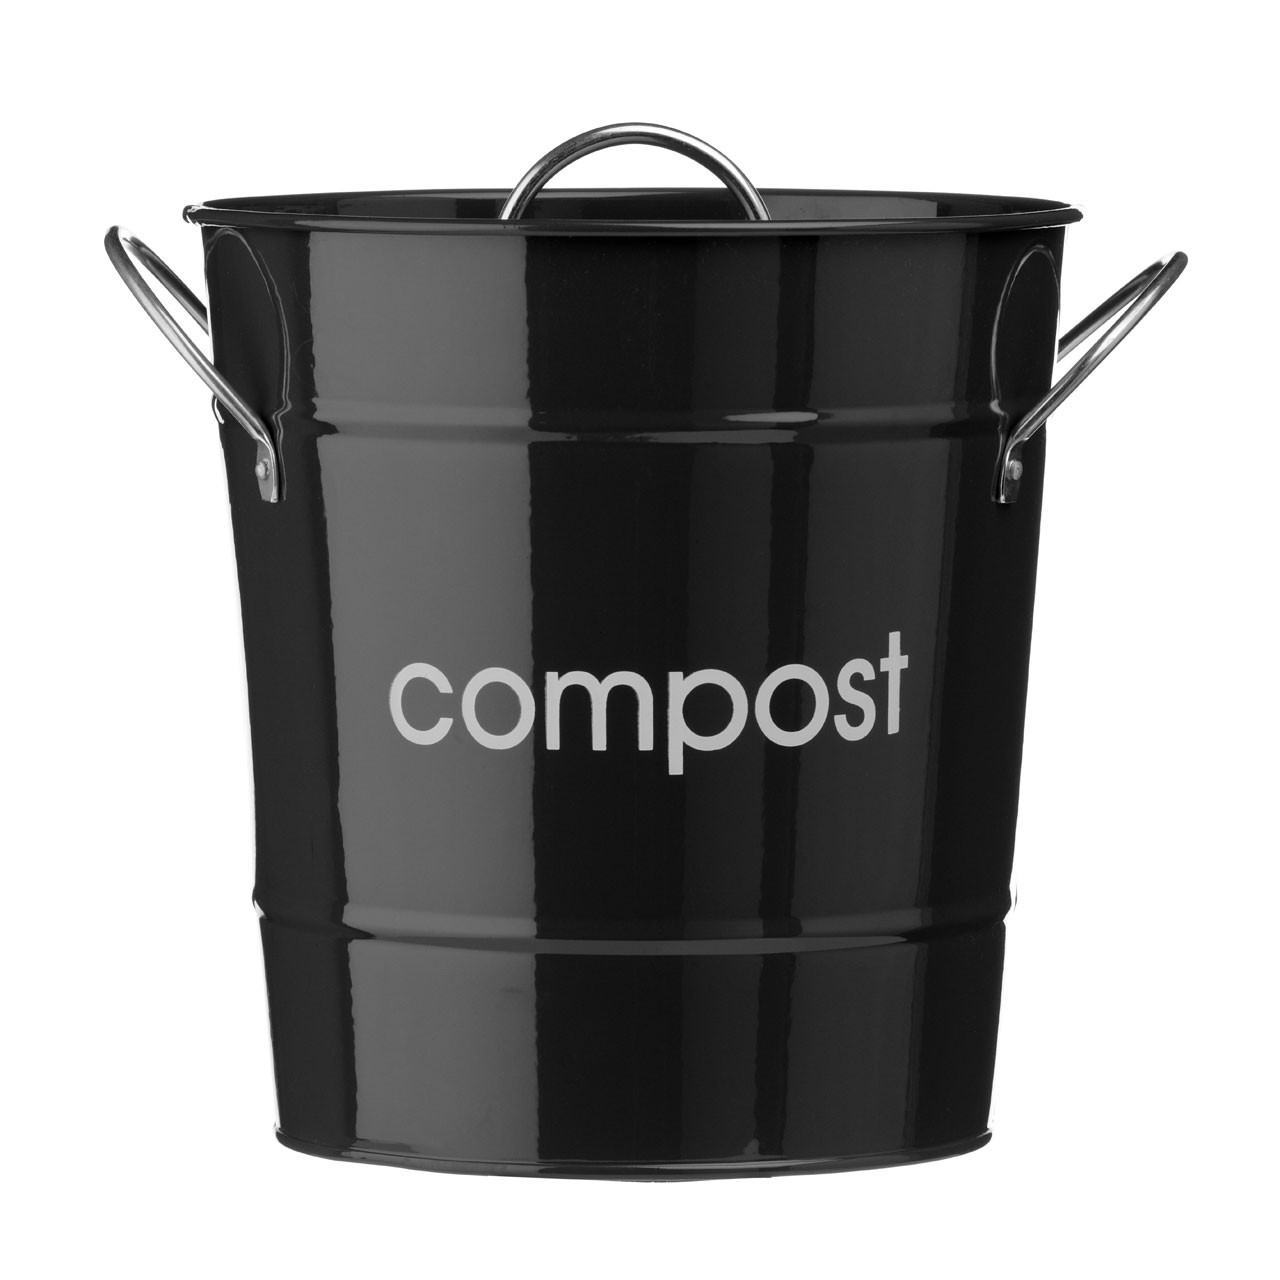 Premier Housewares Compost Bin, Black